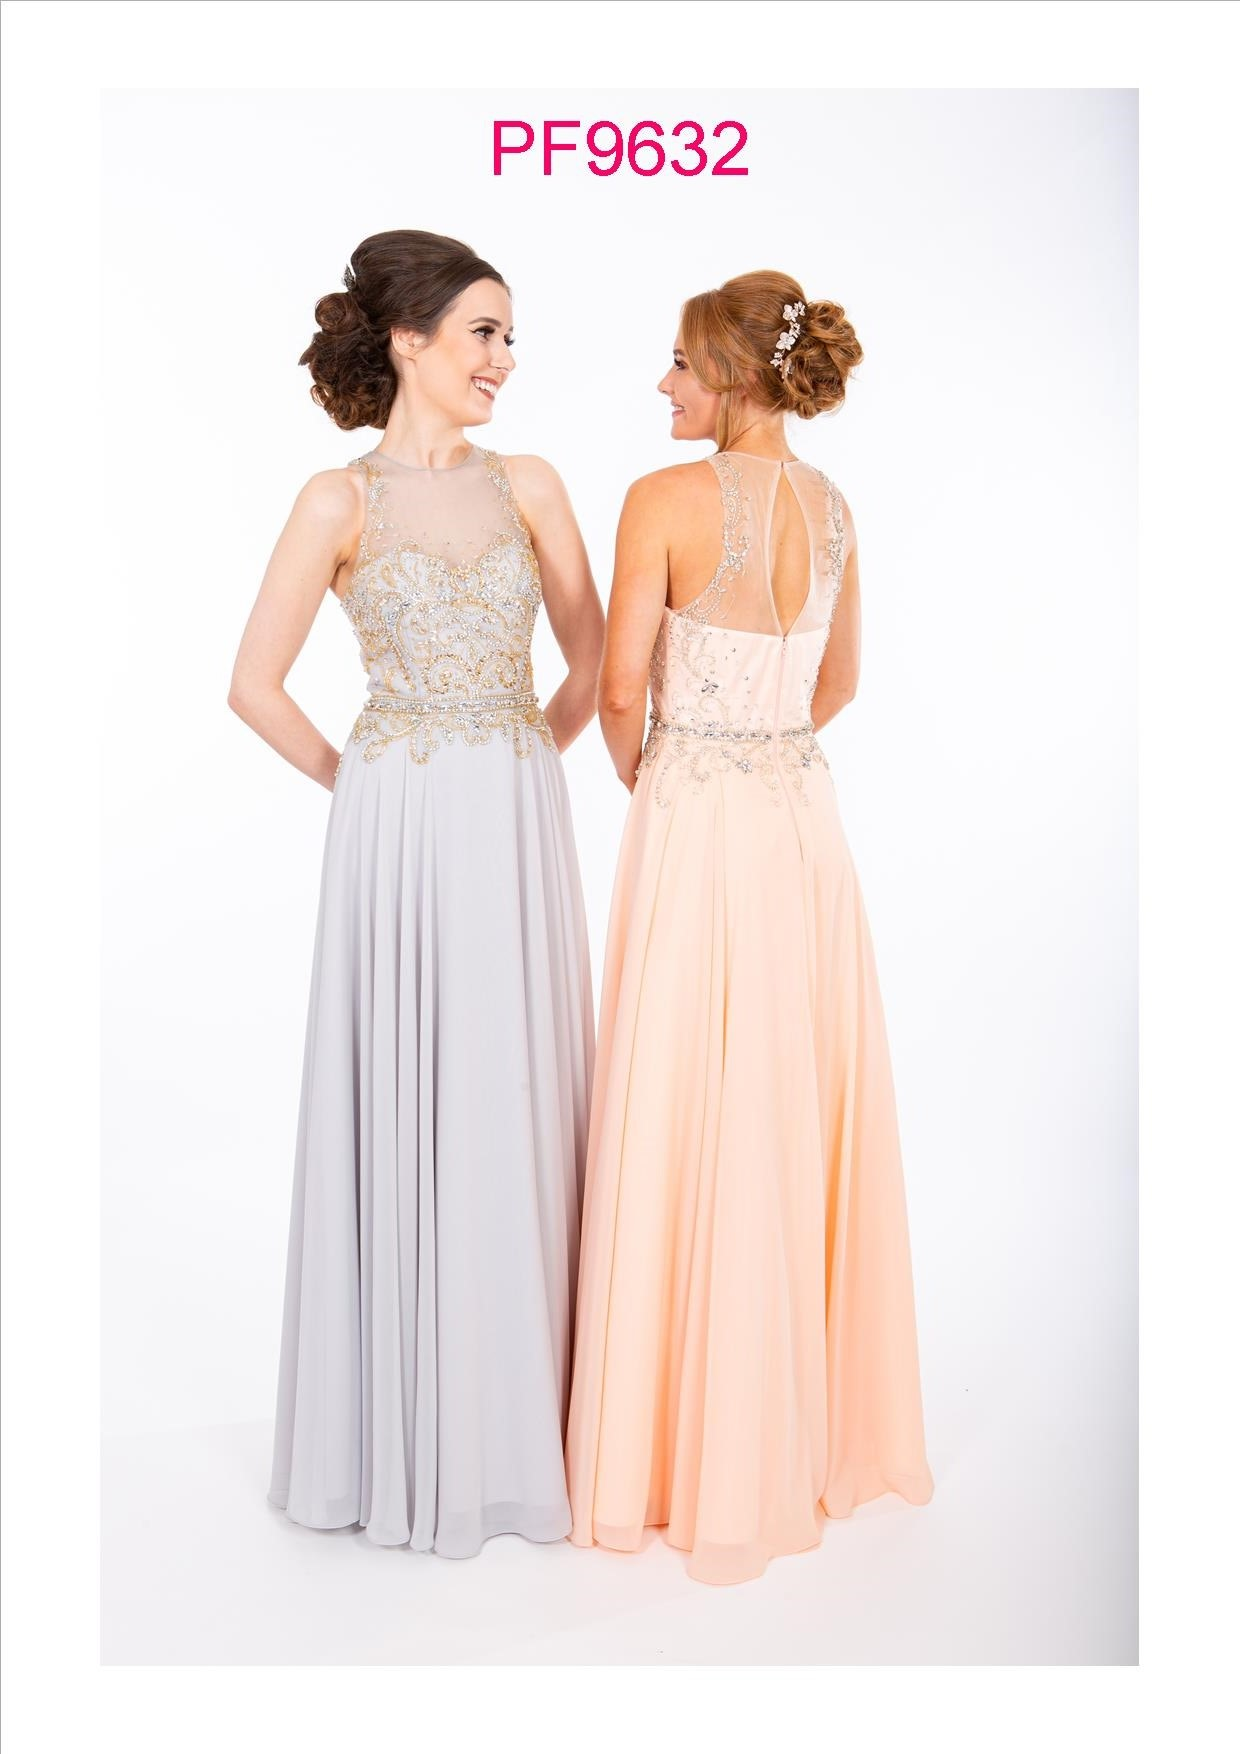 PF9632 Silver and Blush